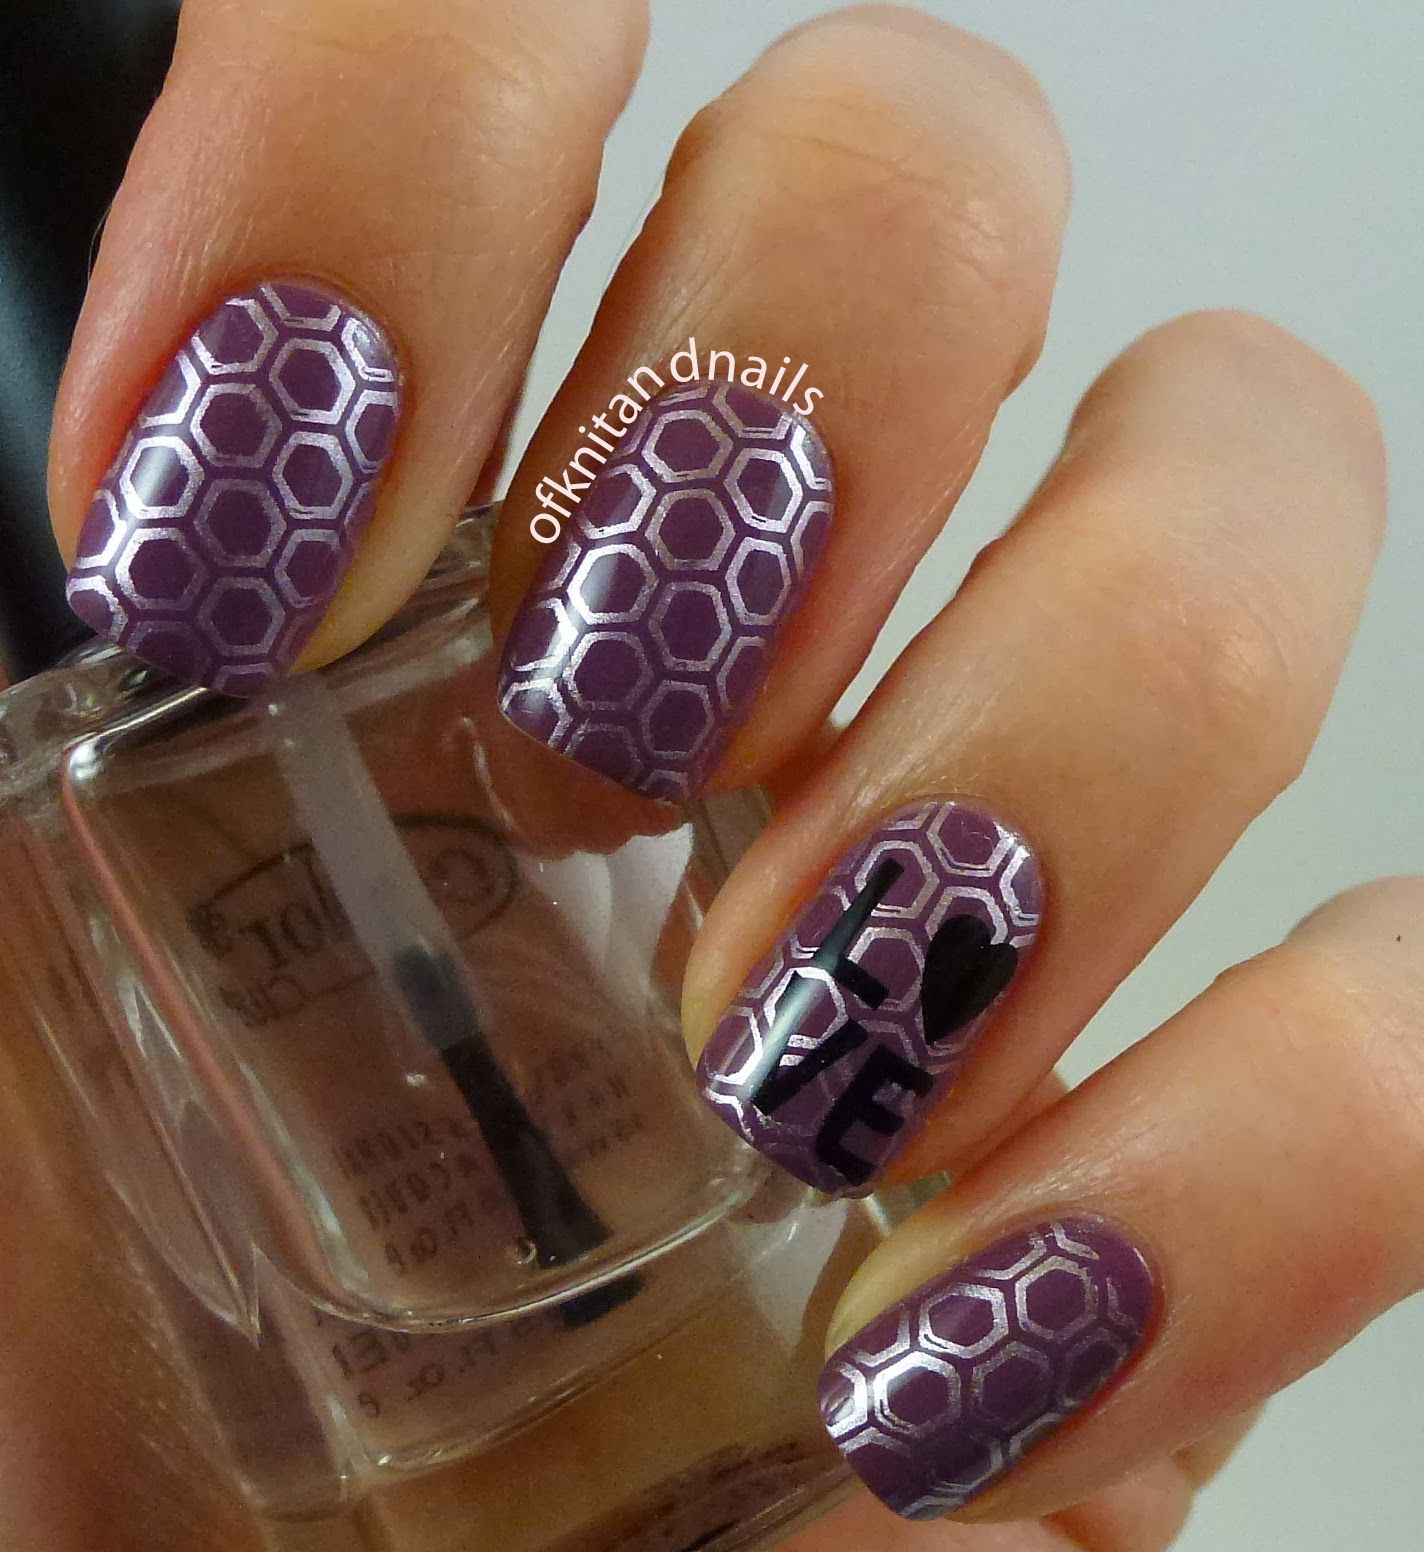 """Hexagon mani by Julie Rivard. Stamping over Zoya Odette, using Essie Nothing Else Metals and BM 422 I stamped the hexagons. Then using Konad Special Black Polish I stamped the """"Love"""" image from BM 412."""